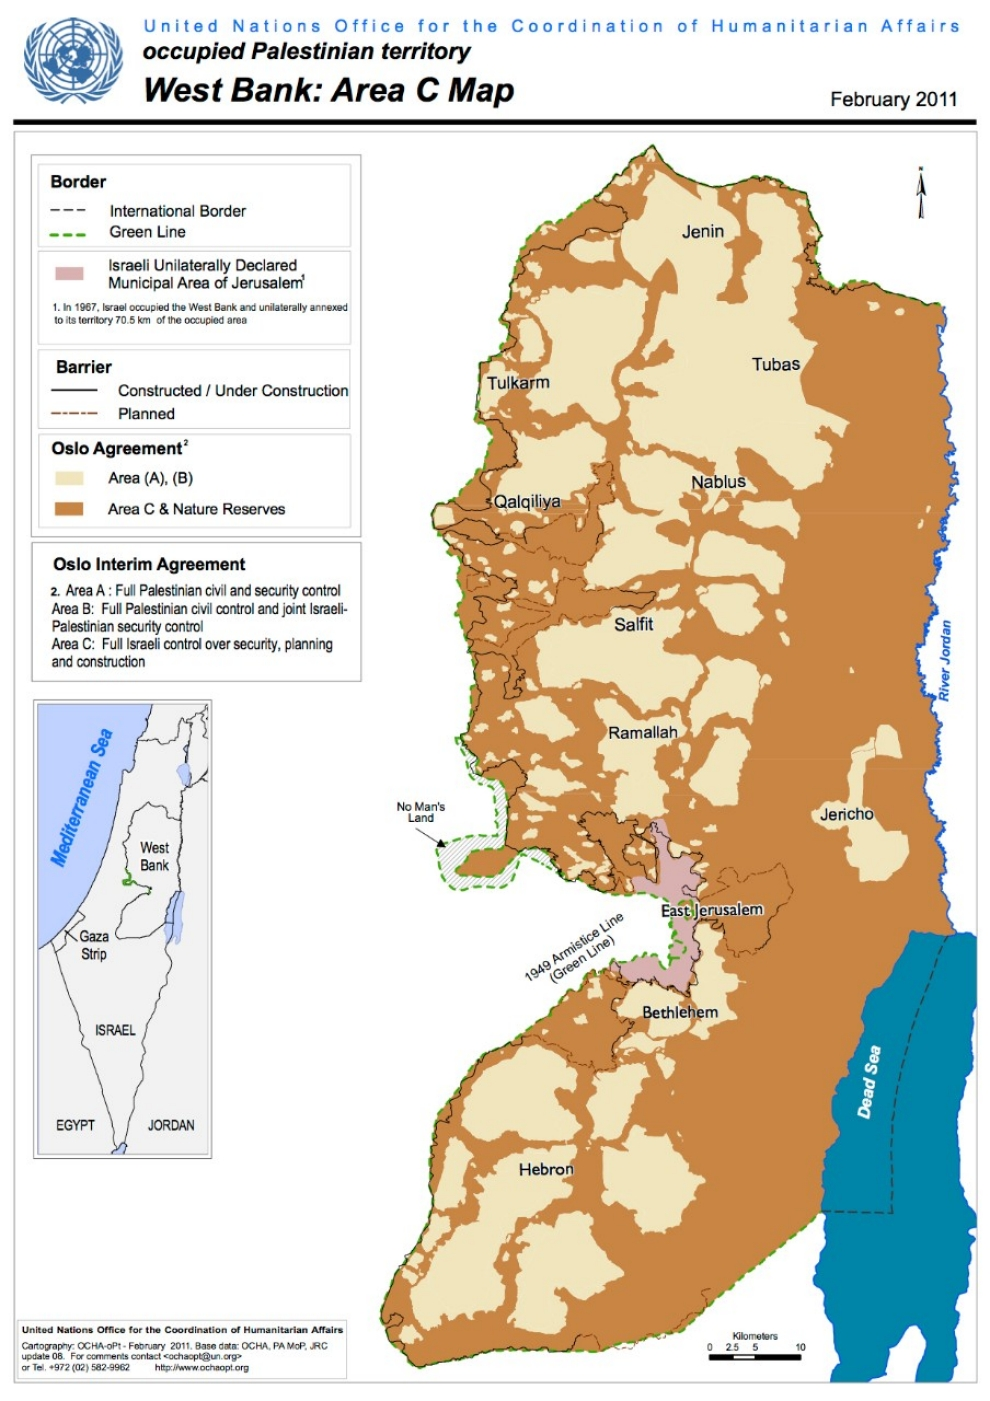 image.adapt.990.high.West_Bank_Map_ocha.